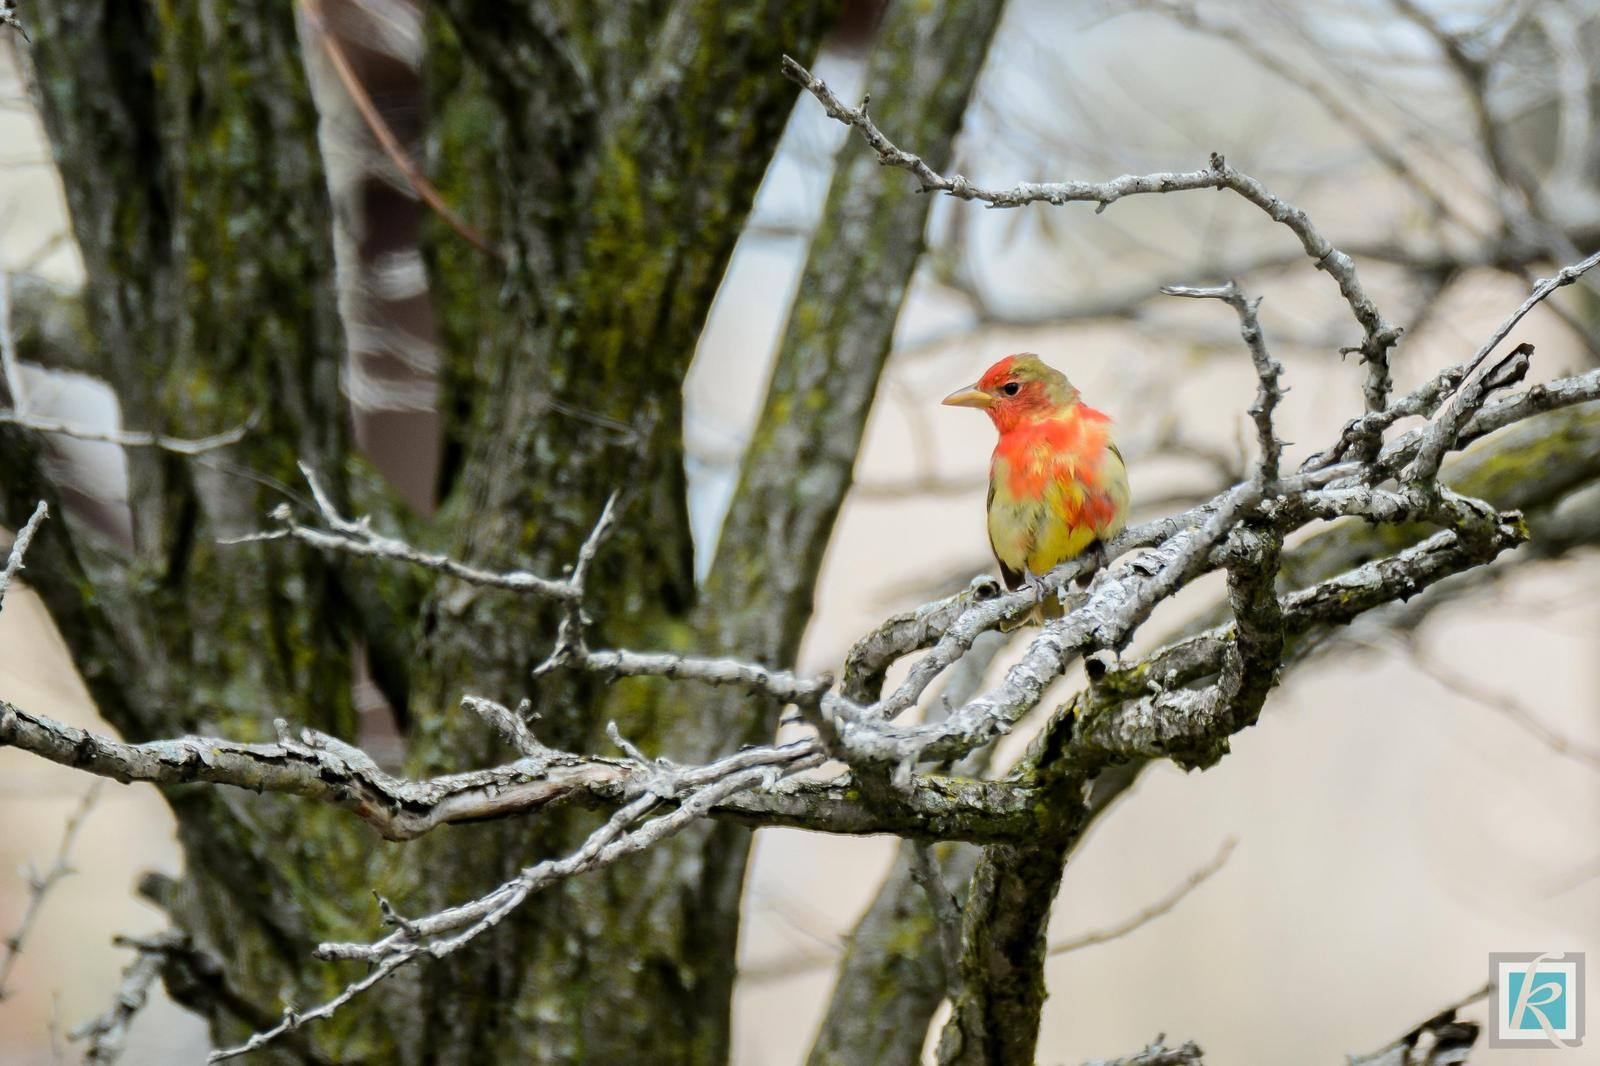 Summer Tanager (Eastern) Photo by Tyson Kahler